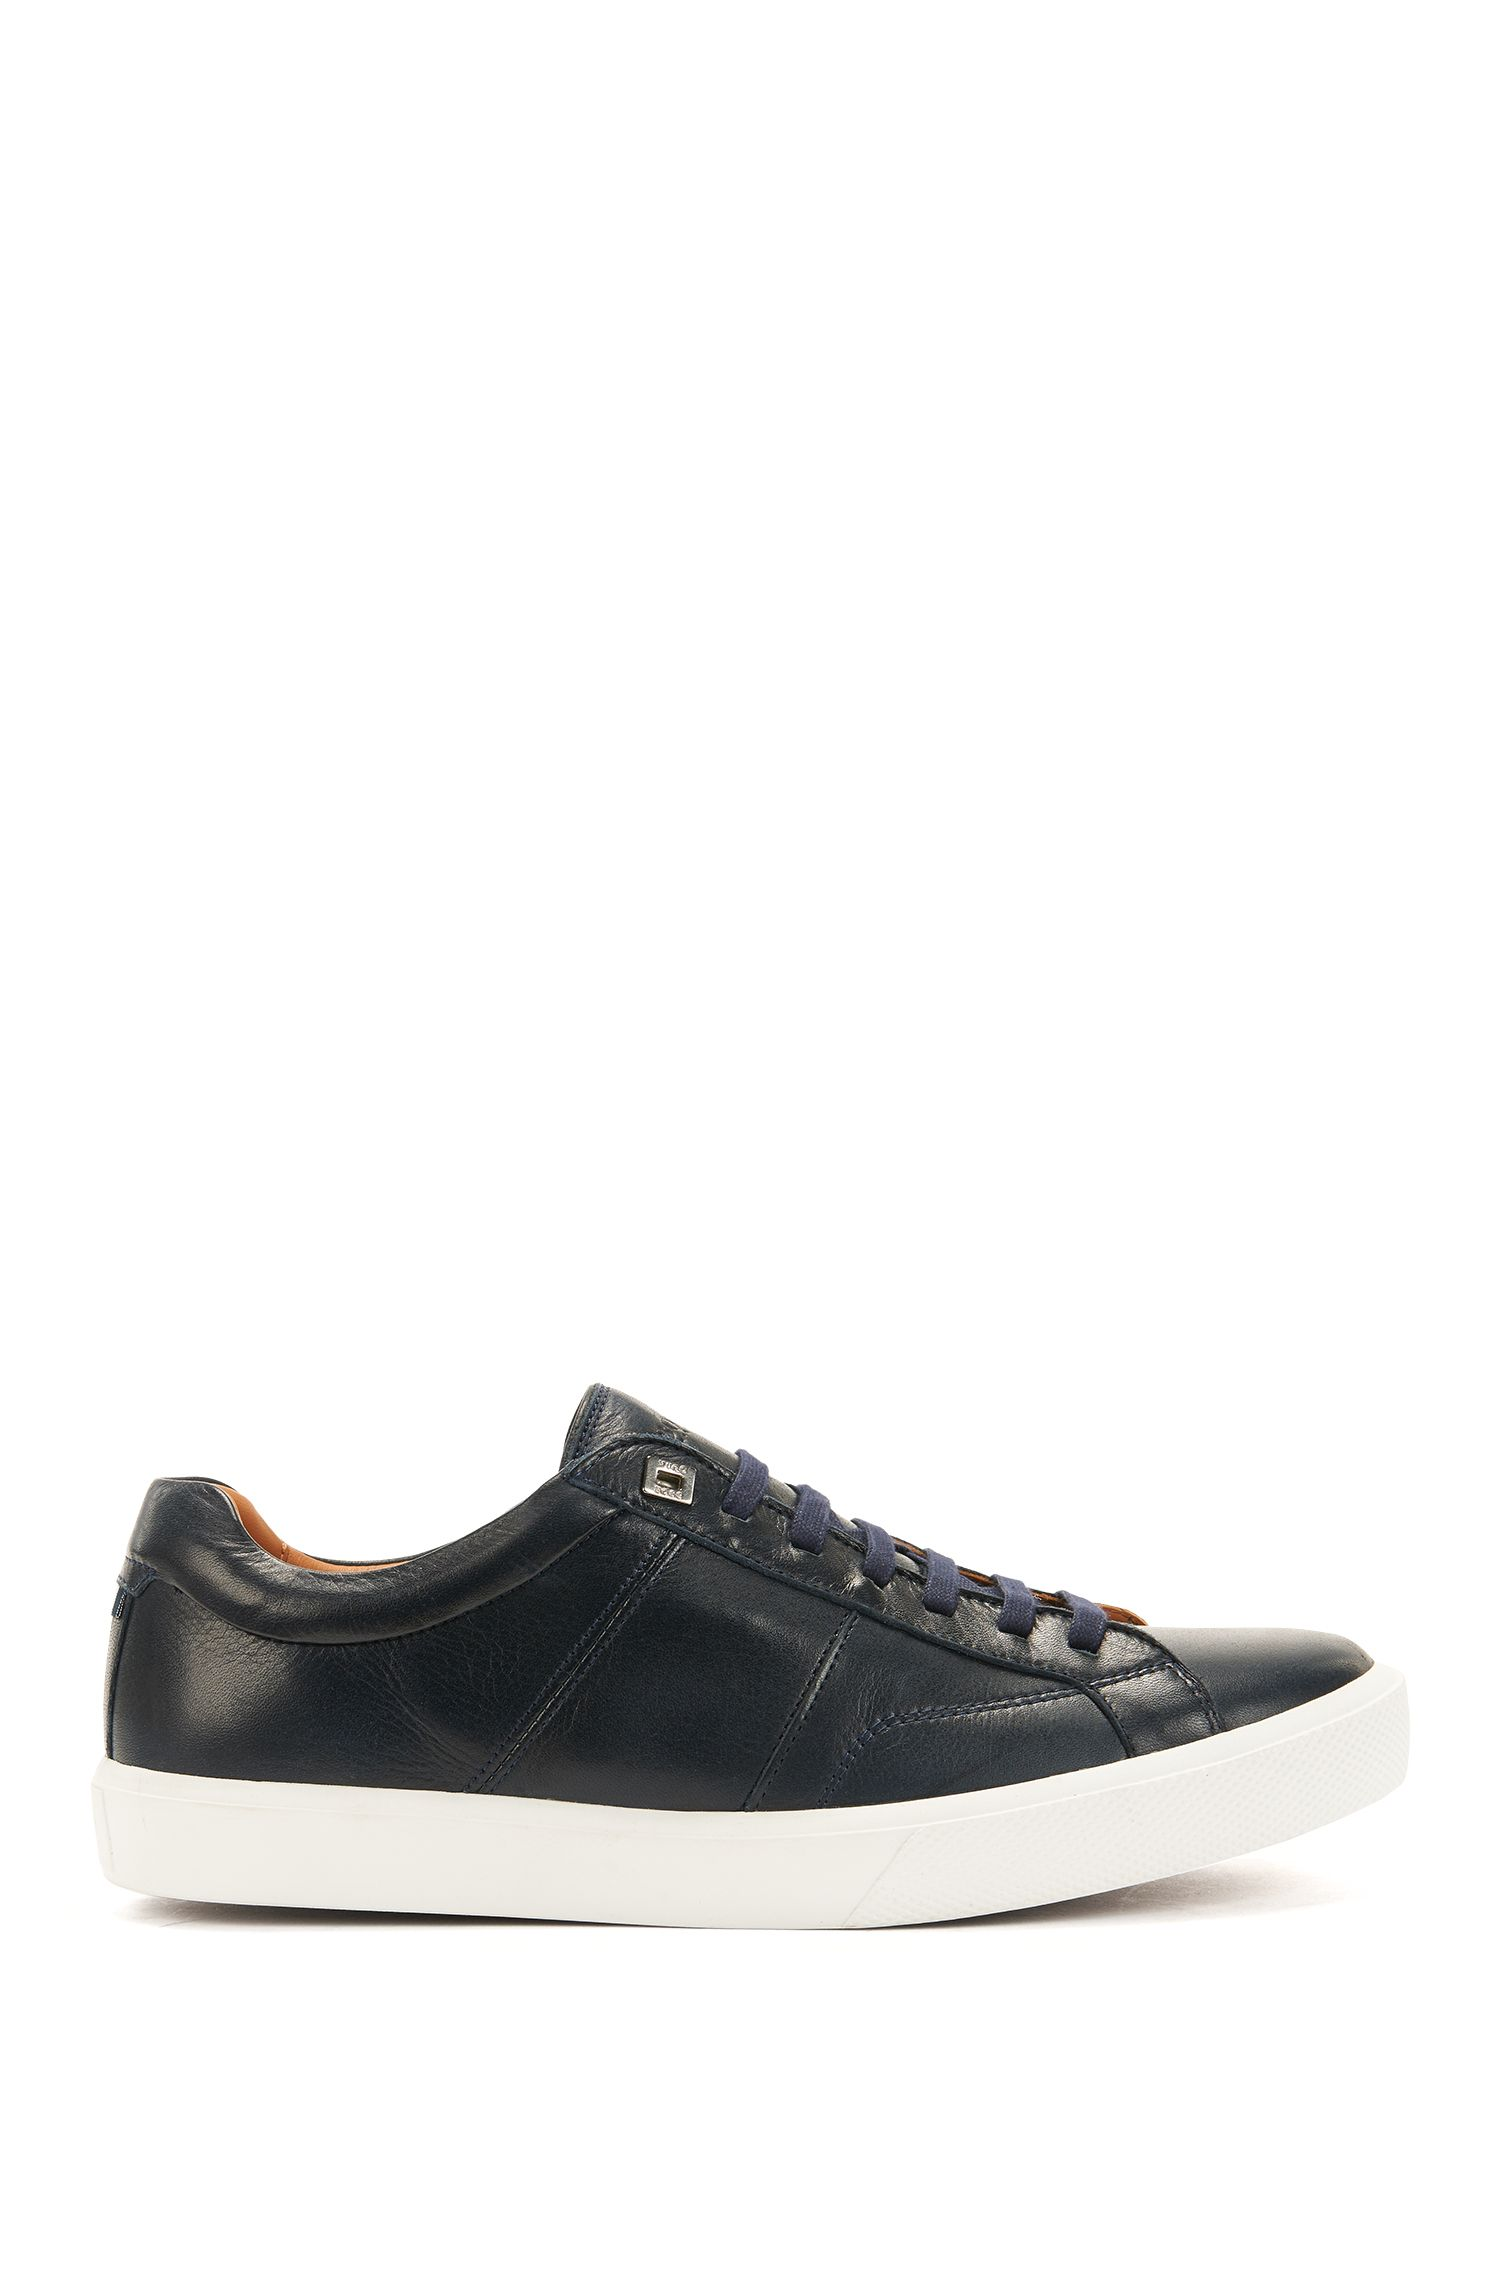 Tennis-style trainers in Italian calf leather